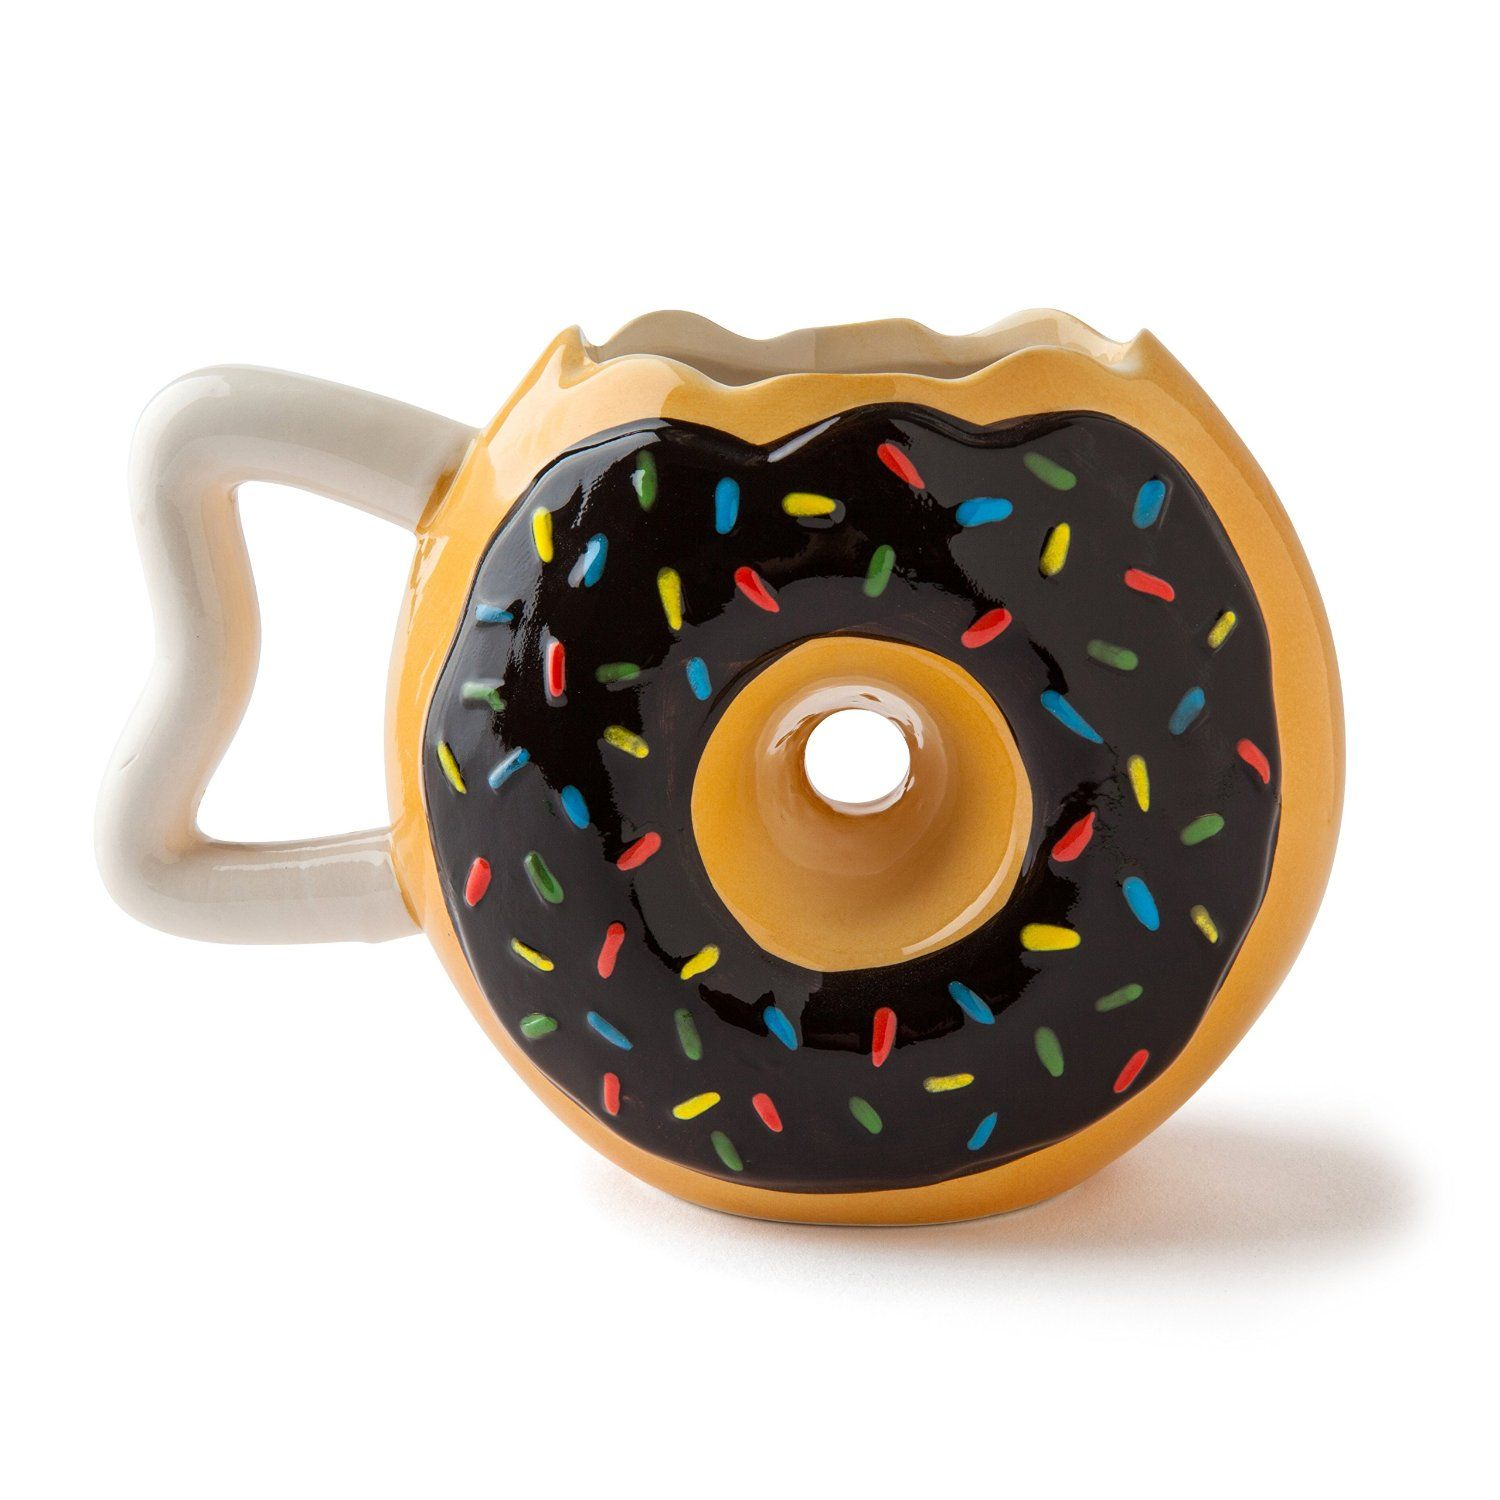 10 cute and sweet donut gifts for nurses cool nursing gift ideas rh pinterest com